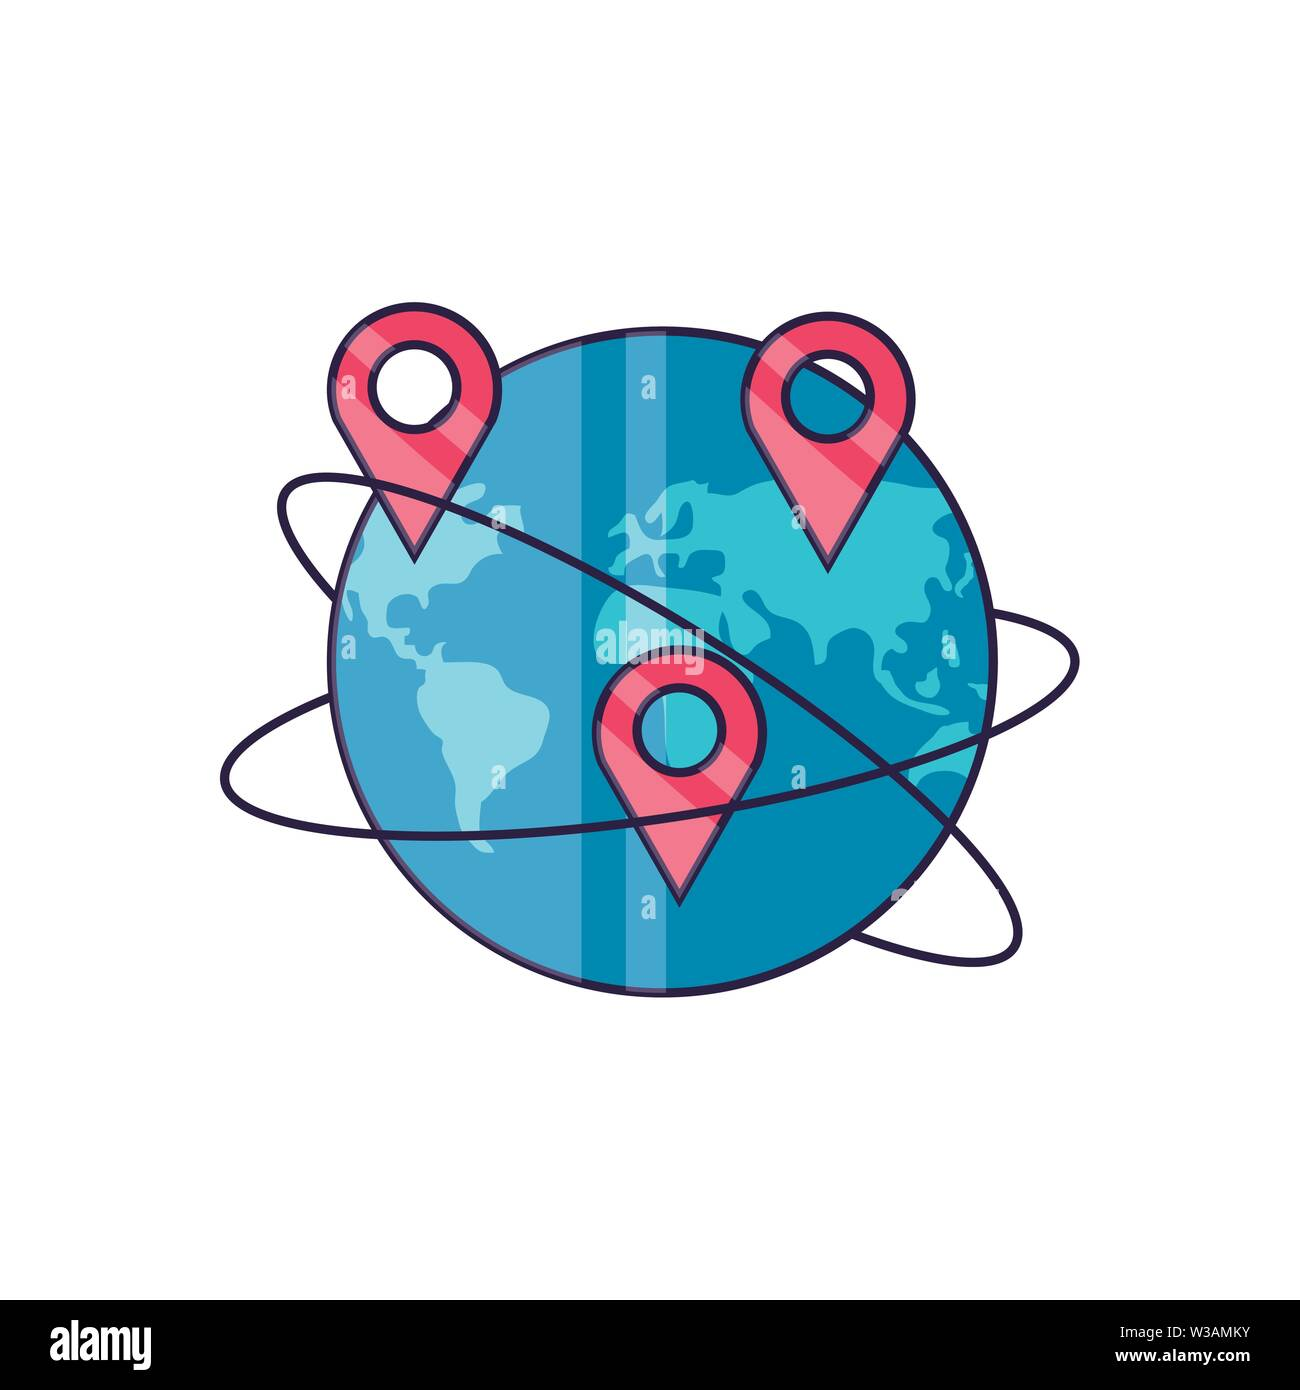 world planet earth with pins location vector illustration design Stock Vector